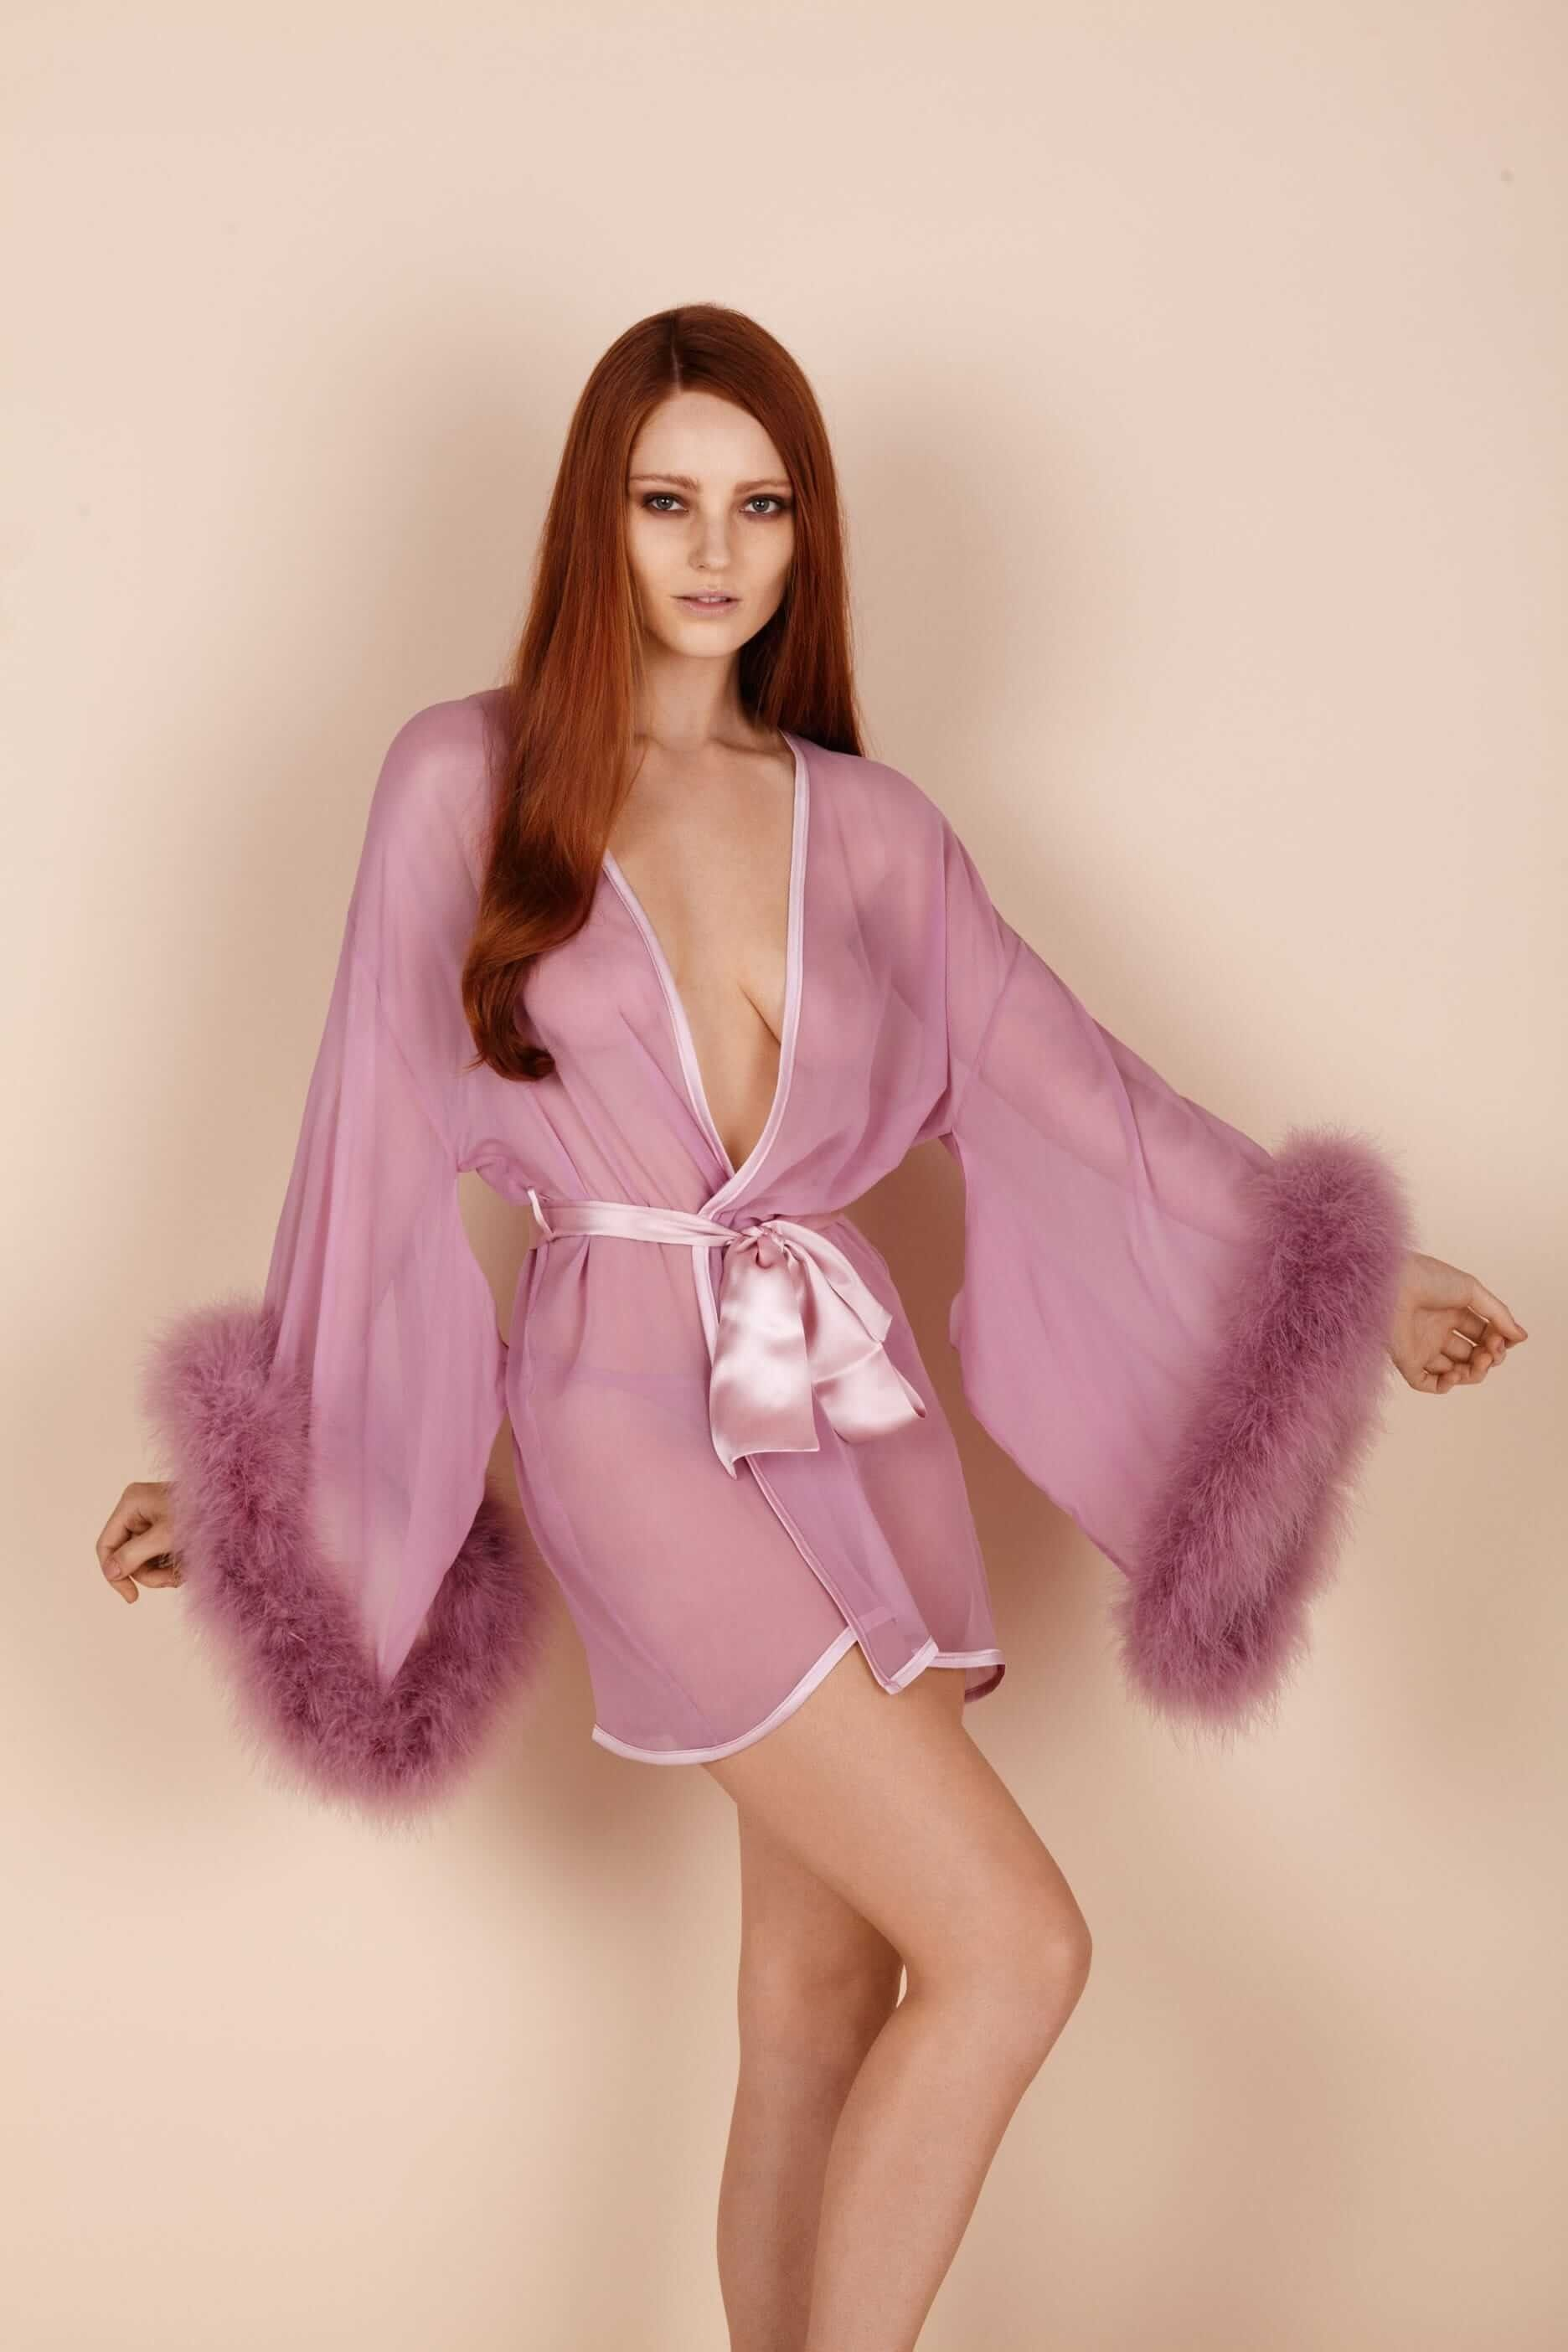 b09211016613 Gilda   Pearl Robe ---- Date Night Lingerie for Hot Older Women